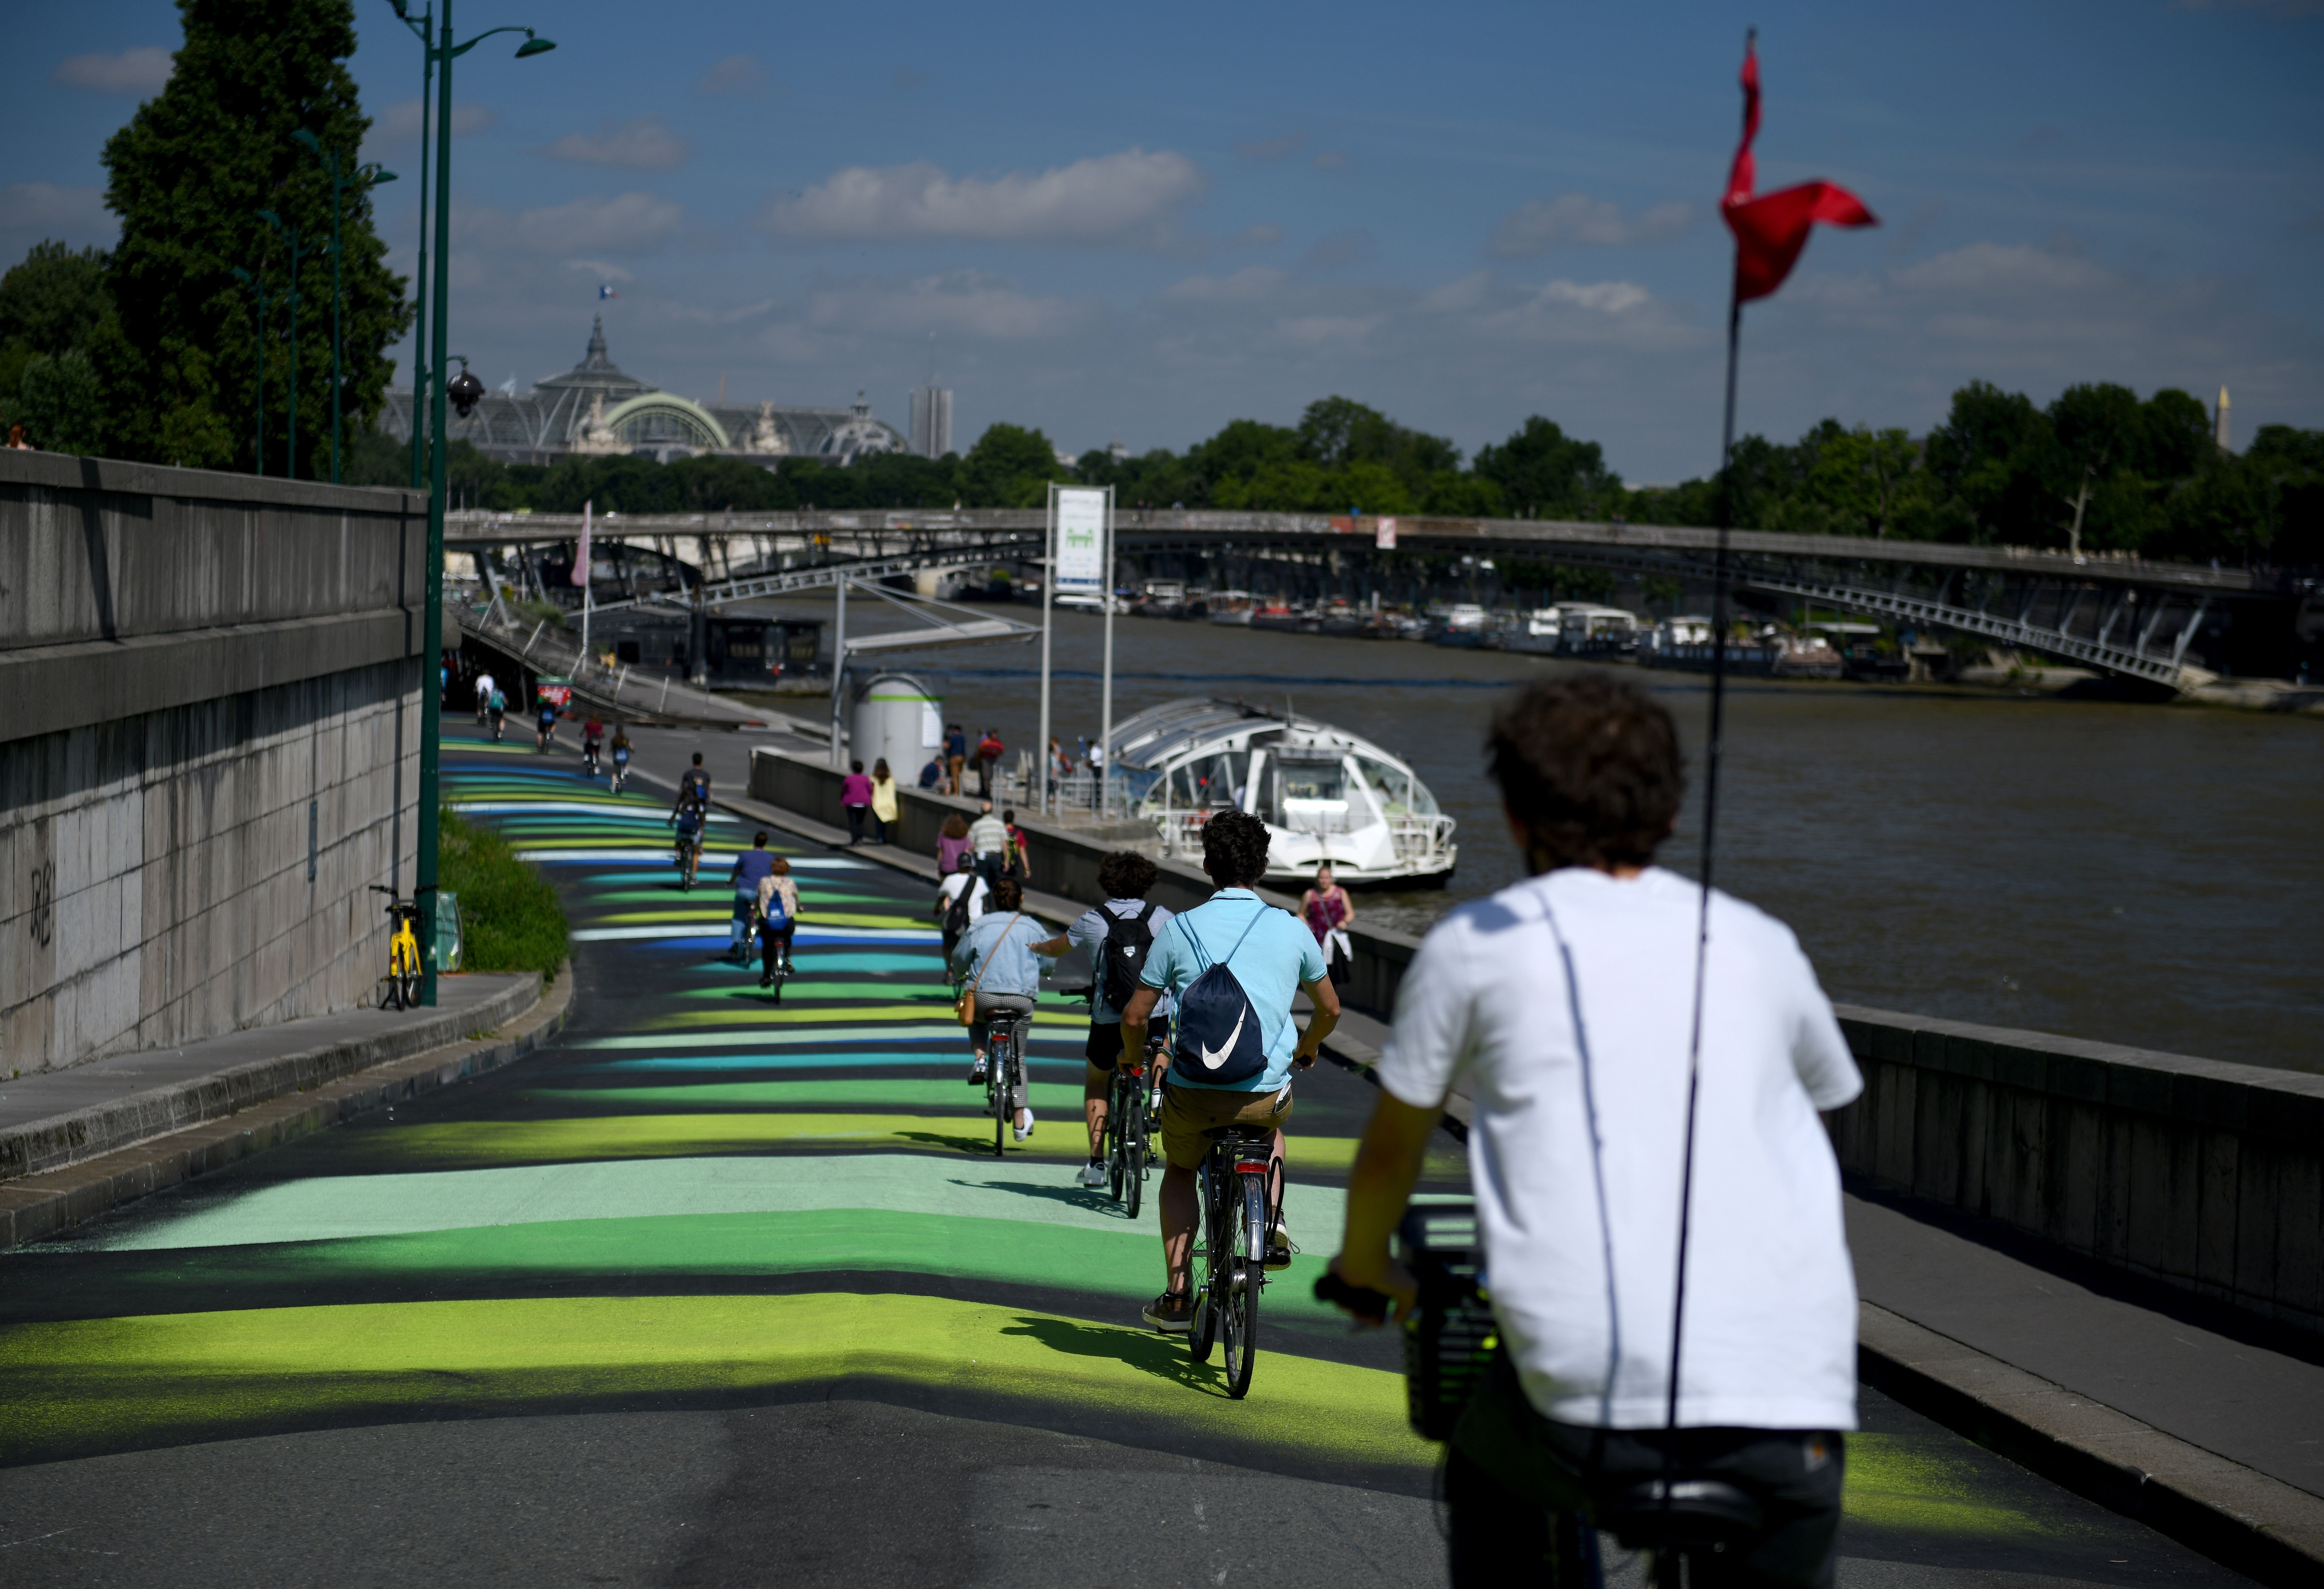 A crowd of cyclists ride down a colored bike path on the bank of the River Seine in Paris.